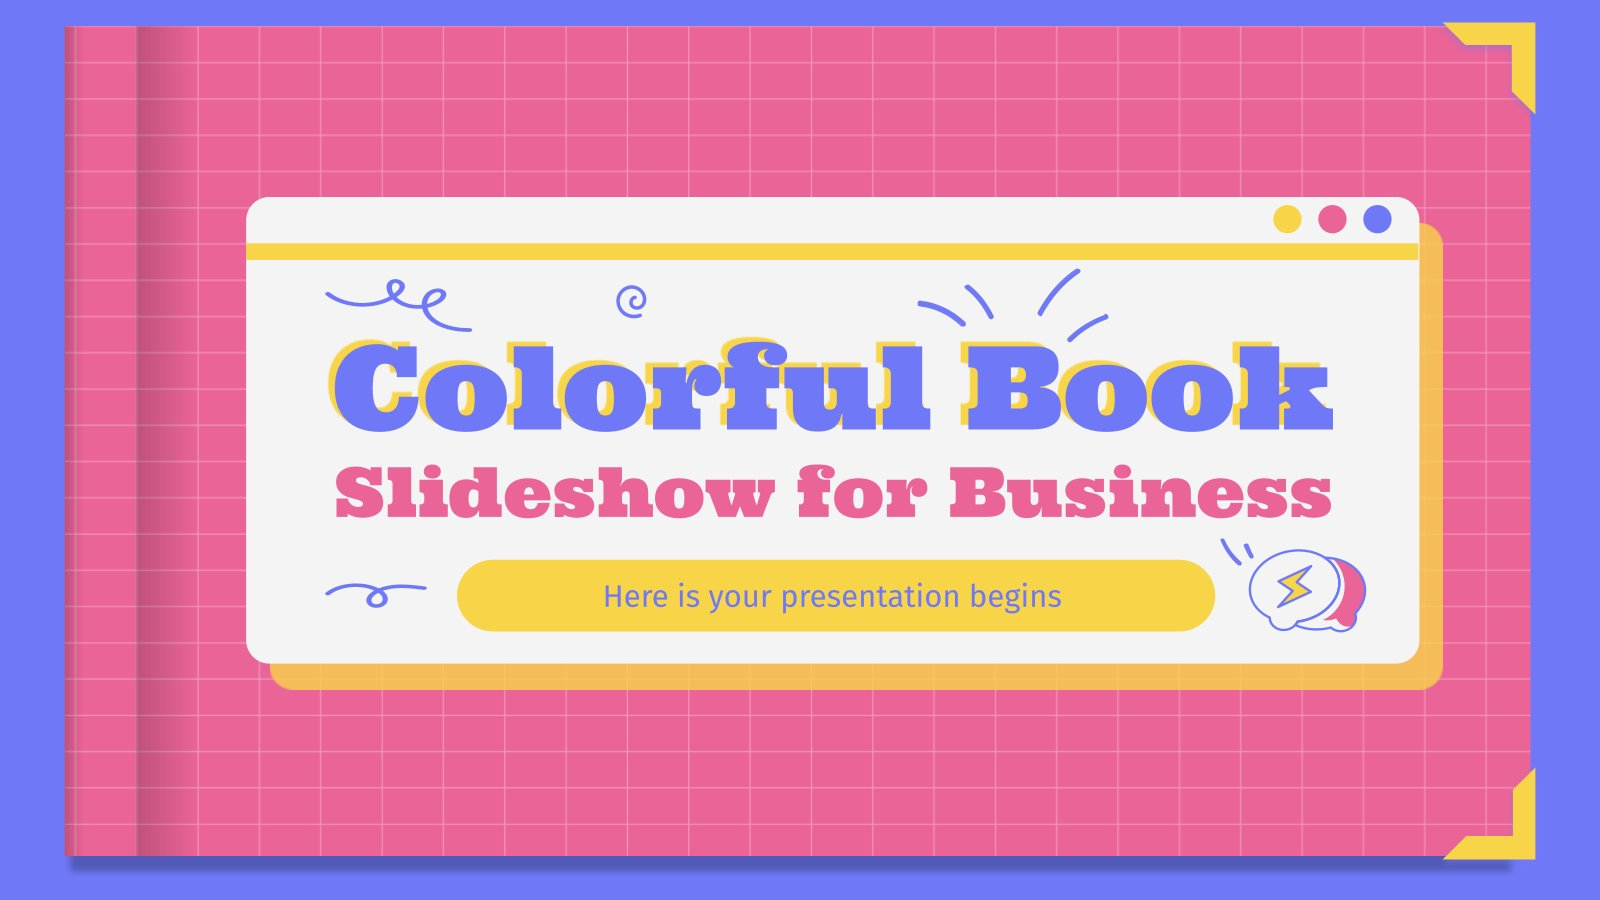 Colorful Book Slideshow for Business presentation template